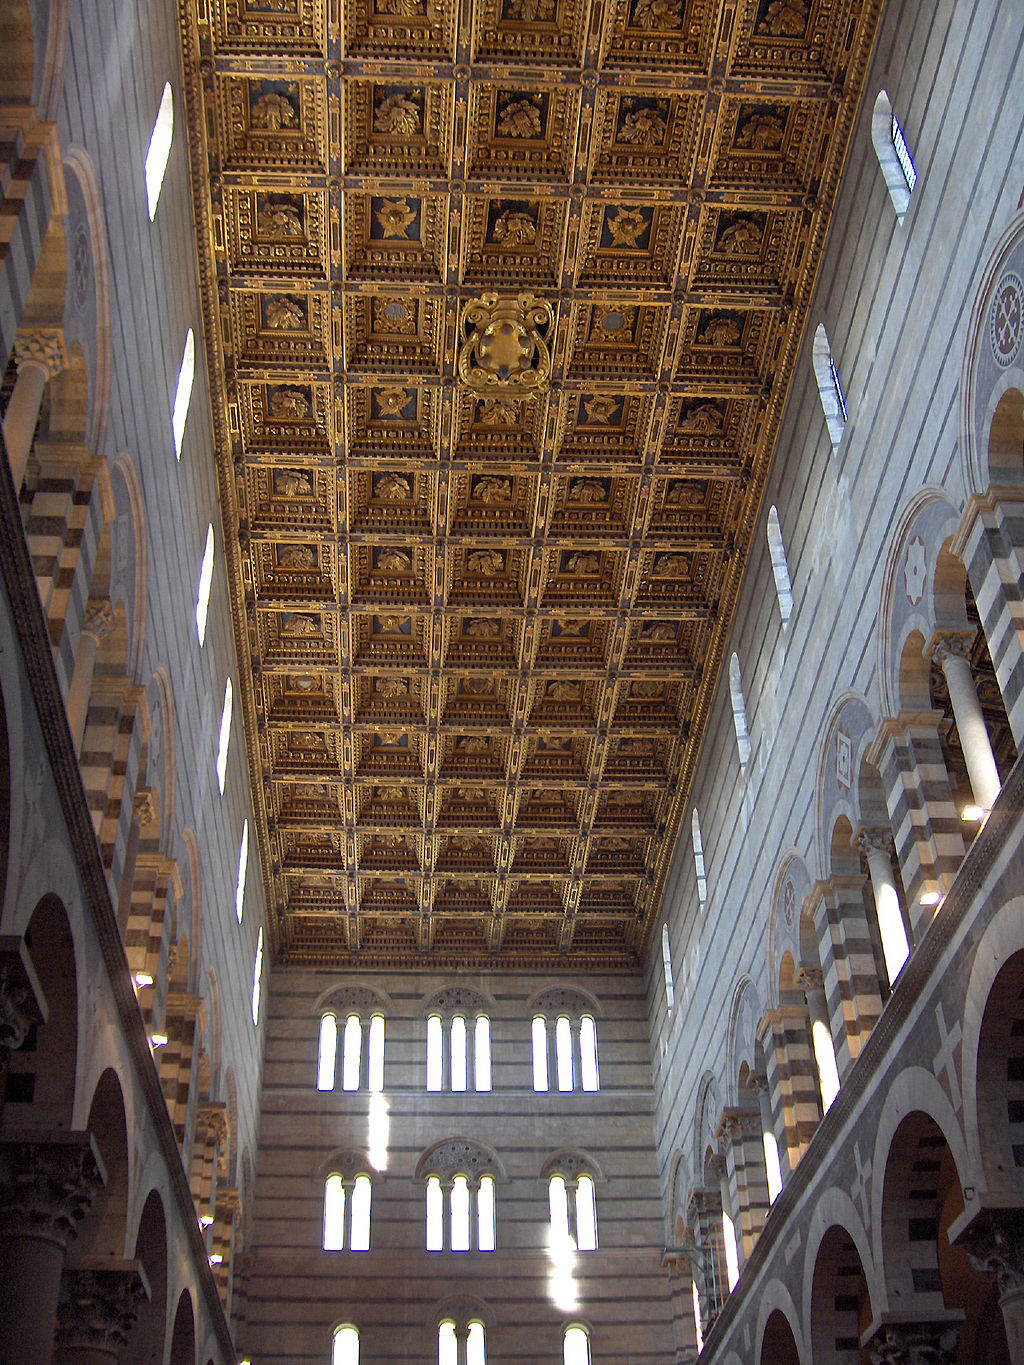 Coffer ceiling (with coat of arms of the Medici) of the cathedral, Pisa